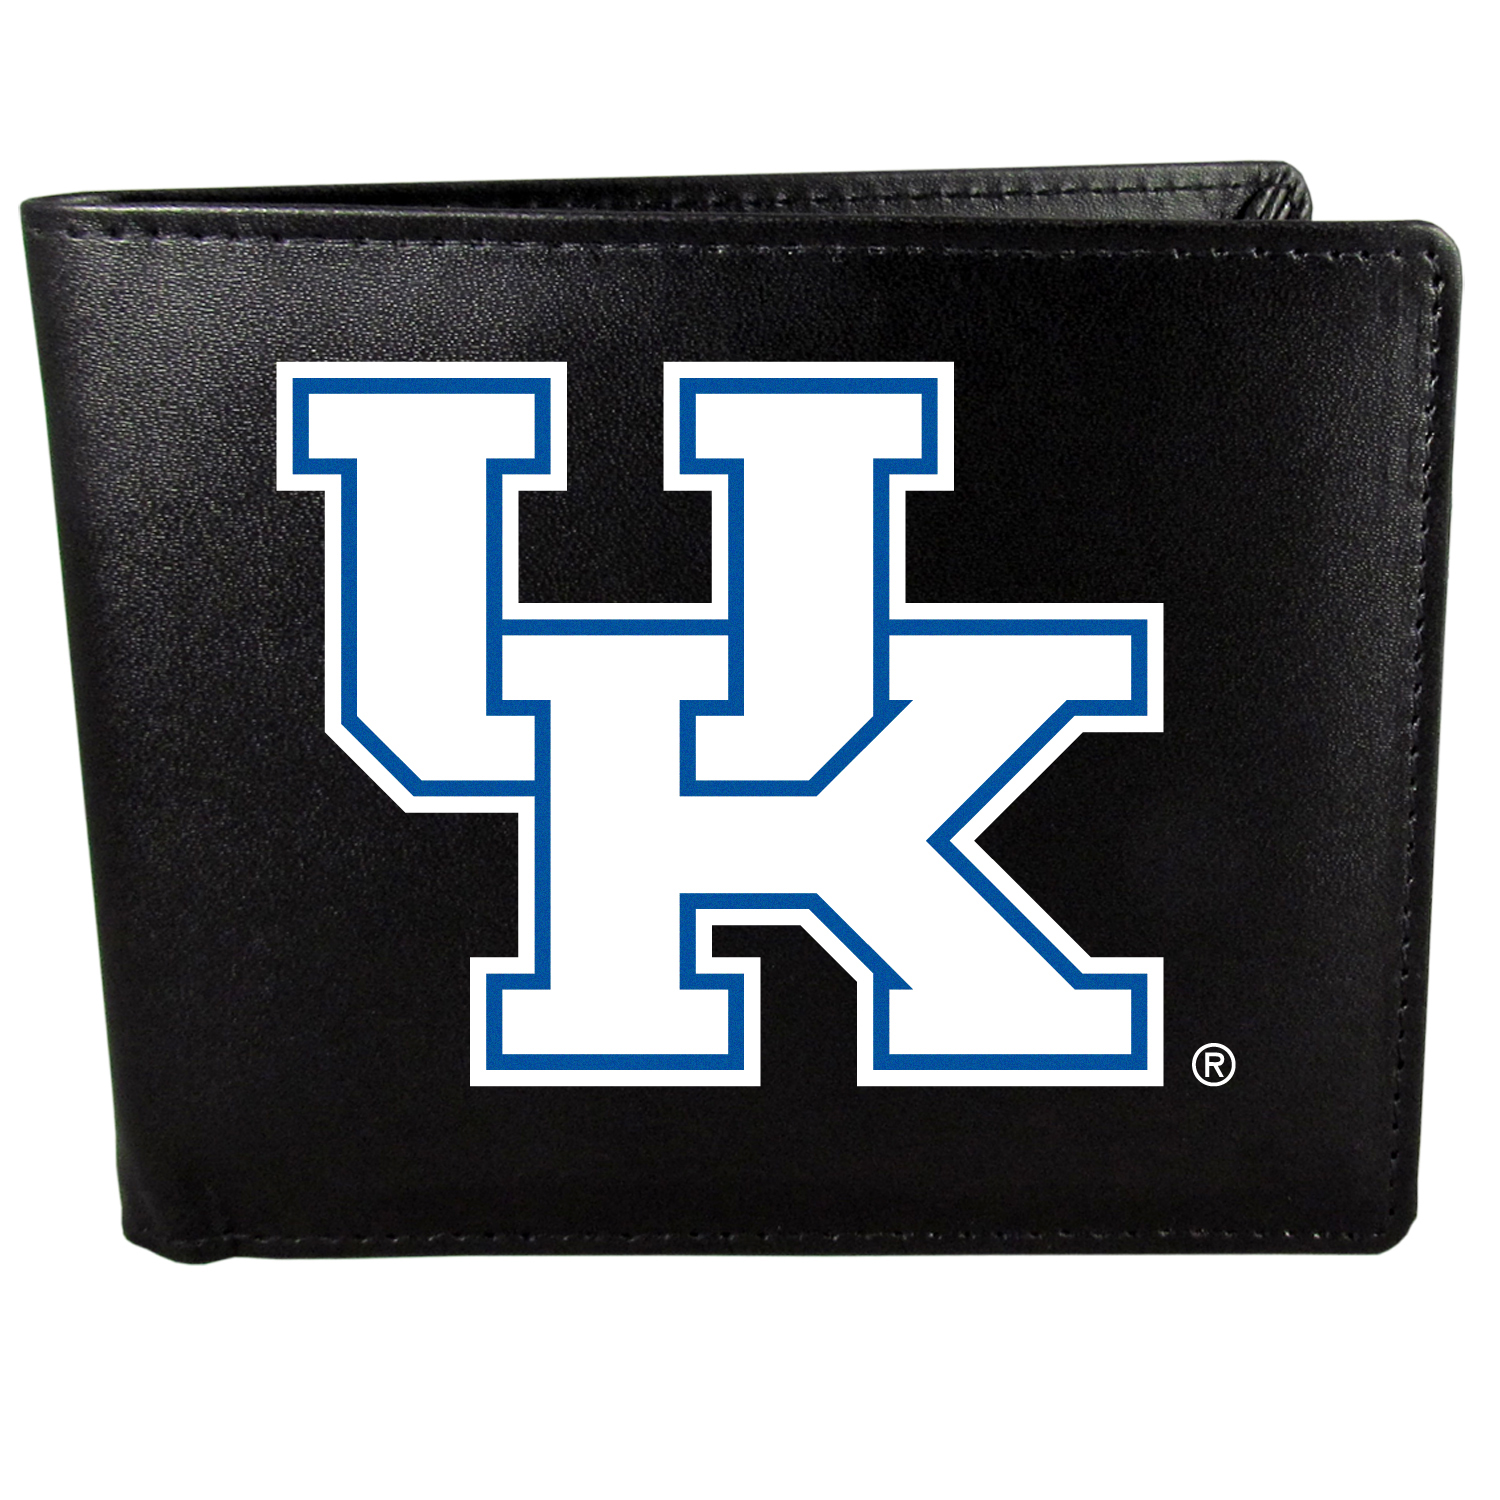 Kentucky Wildcats Bi-fold Wallet Large Logo - Sports fans do not have to sacrifice style with this classic bi-fold wallet that sports the Kentucky Wildcats extra large logo. This men's fashion accessory has a leather grain look and expert craftmanship for a quality wallet at a great price. The wallet features inner credit card slots, windowed ID slot and a large billfold pocket. The front of the wallet features a printed team logo.